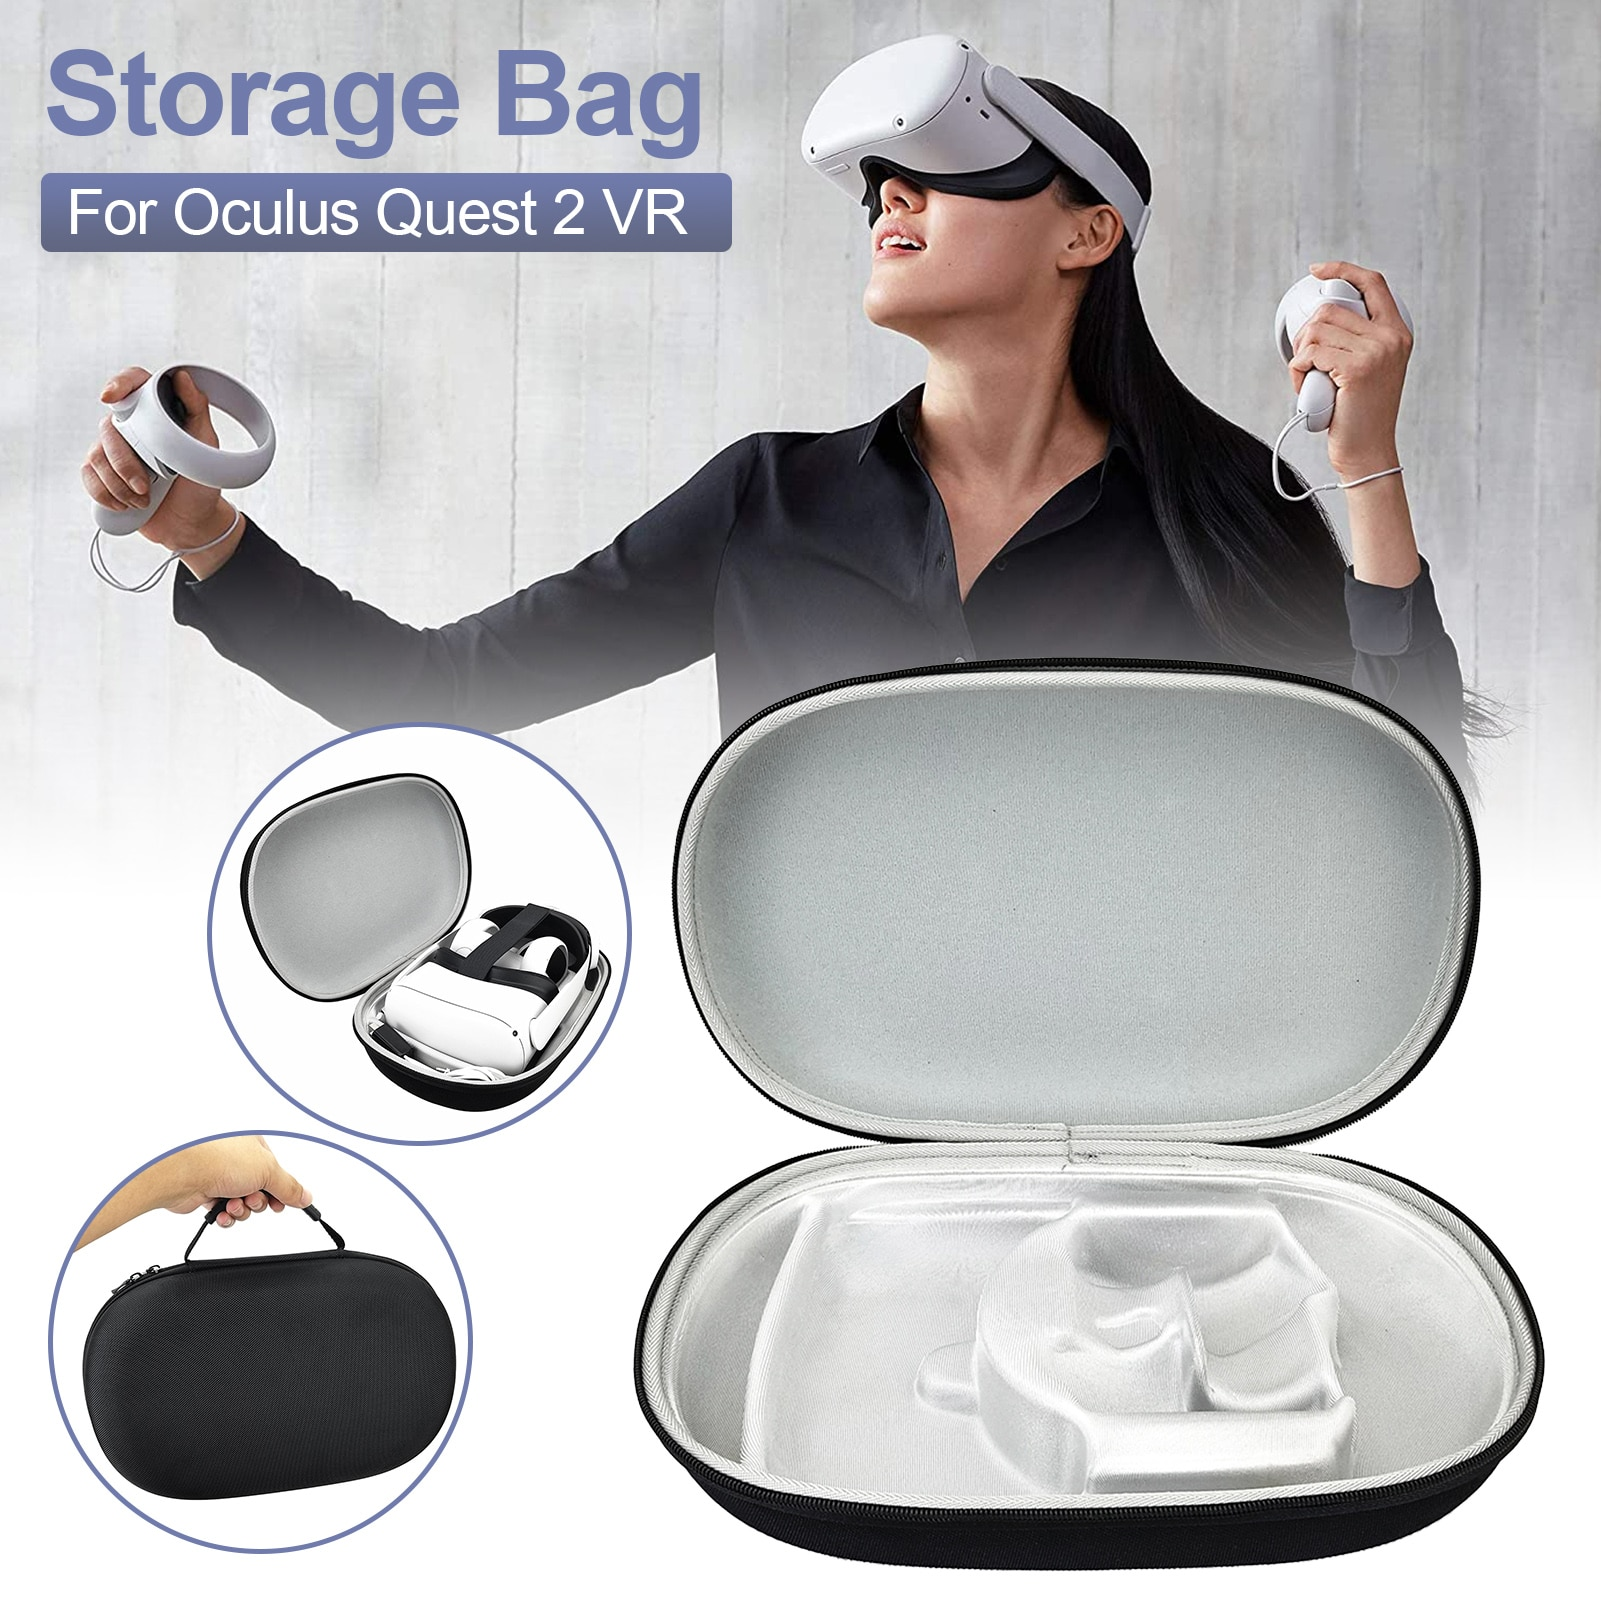 Portable Storage Box For Oculus Quest 2 Vr Glasses&Headset EVA Travel Carrying Case For Oculus Quest 2 Accessories Protector Bag